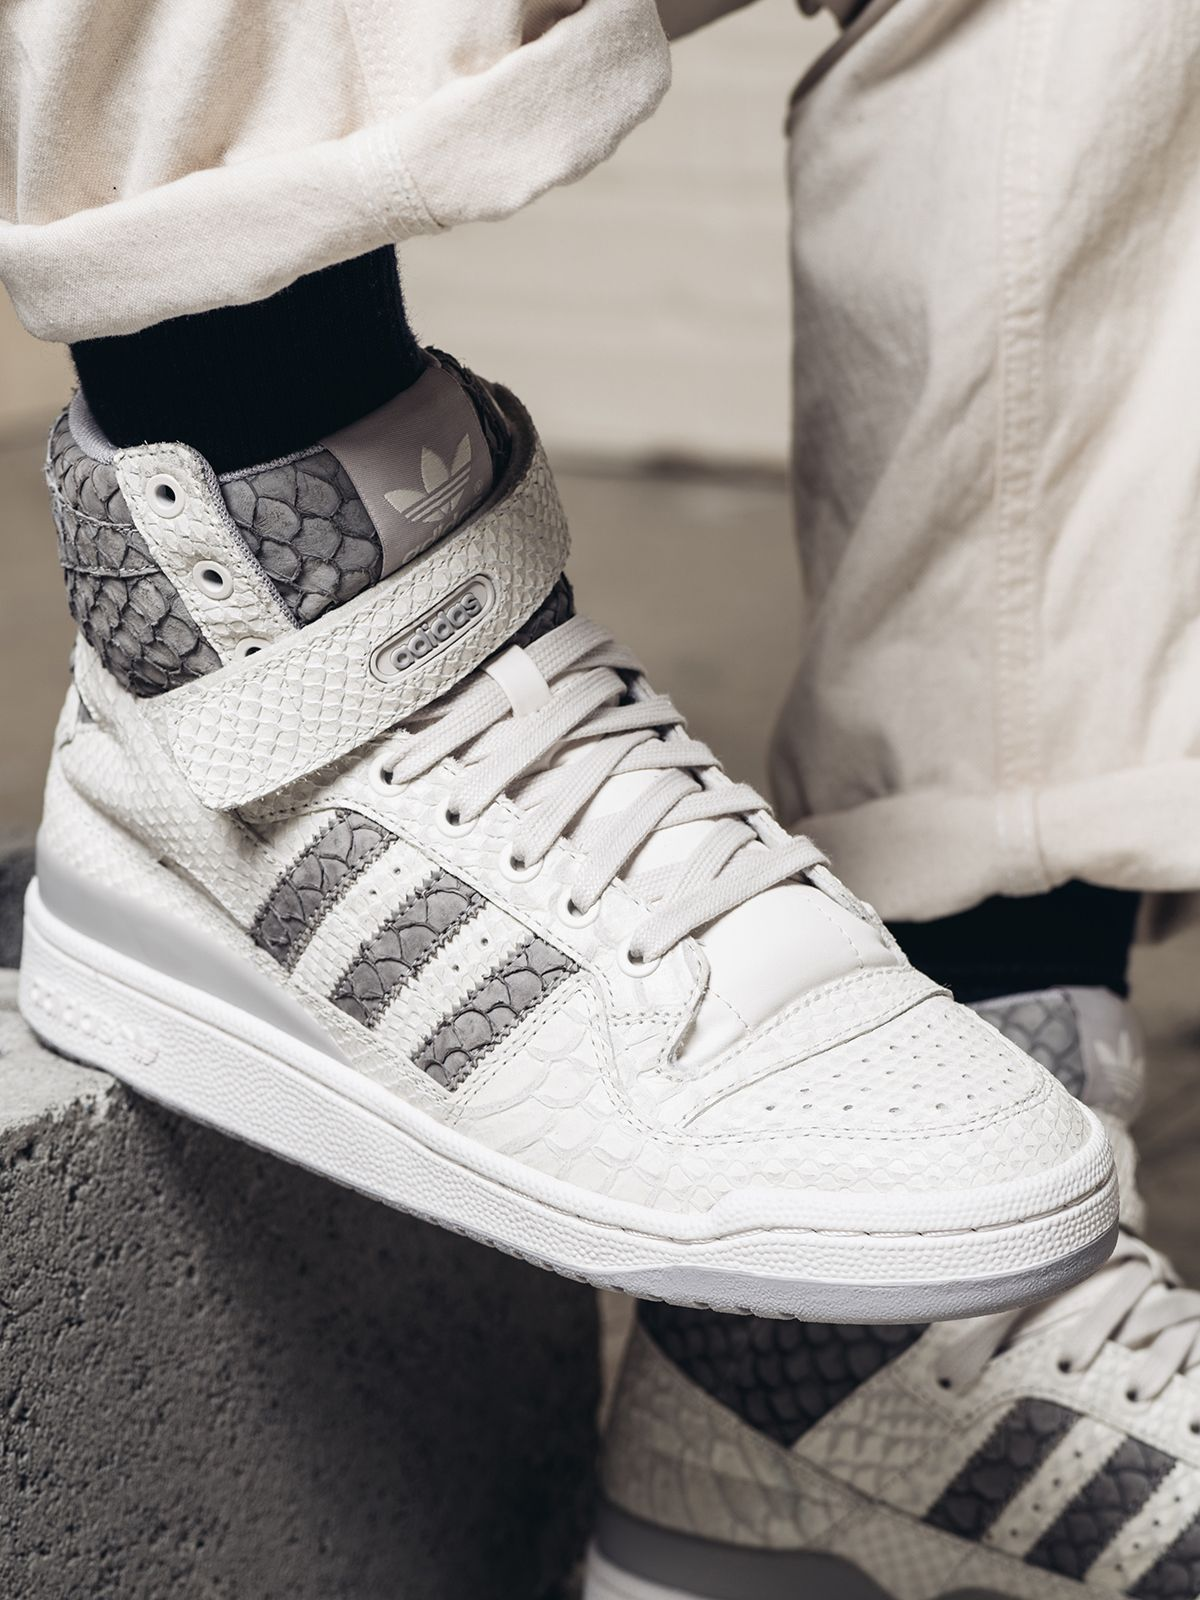 huge discount 4f0e4 e2b61 adidas Originals Forum Hi OG Returns in Snakeskin  Carp - EU Kicks  Sneaker…